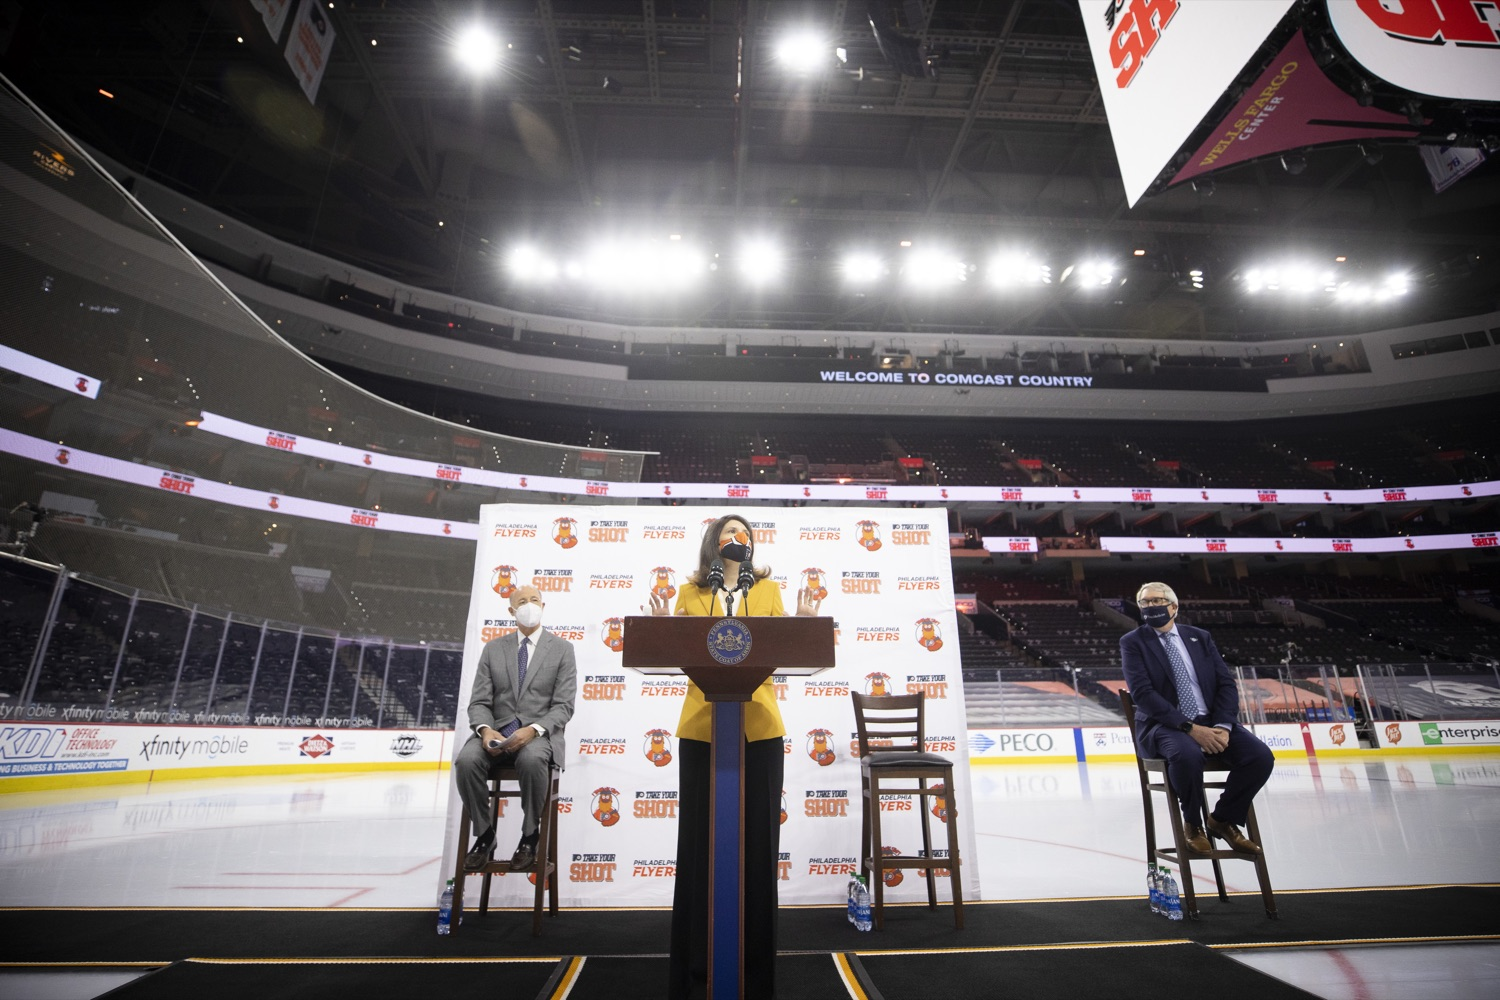 "<a href=""https://filesource.wostreaming.net/commonwealthofpa/photo/18727_gov_vaccines_dz_010.jpg"" target=""_blank"">⇣ Download Photo<br></a>Valerie Camillo, President of Business Operations, Philadelphia Flyers & Wells Fargo speaking with the press.   Governor Tom Wolf today visited the Philadelphia Flyers organization at the Wells Fargo Center in Philadelphia to discuss COVID-19 vaccine efforts in Pennsylvania. The Flyers recently launched a comprehensive COVID-19 vaccine campaign, Take Your Shot, encouraging Pennsylvanians to get vaccinated.  Philadelphia, PA  MAY 3, 2021"